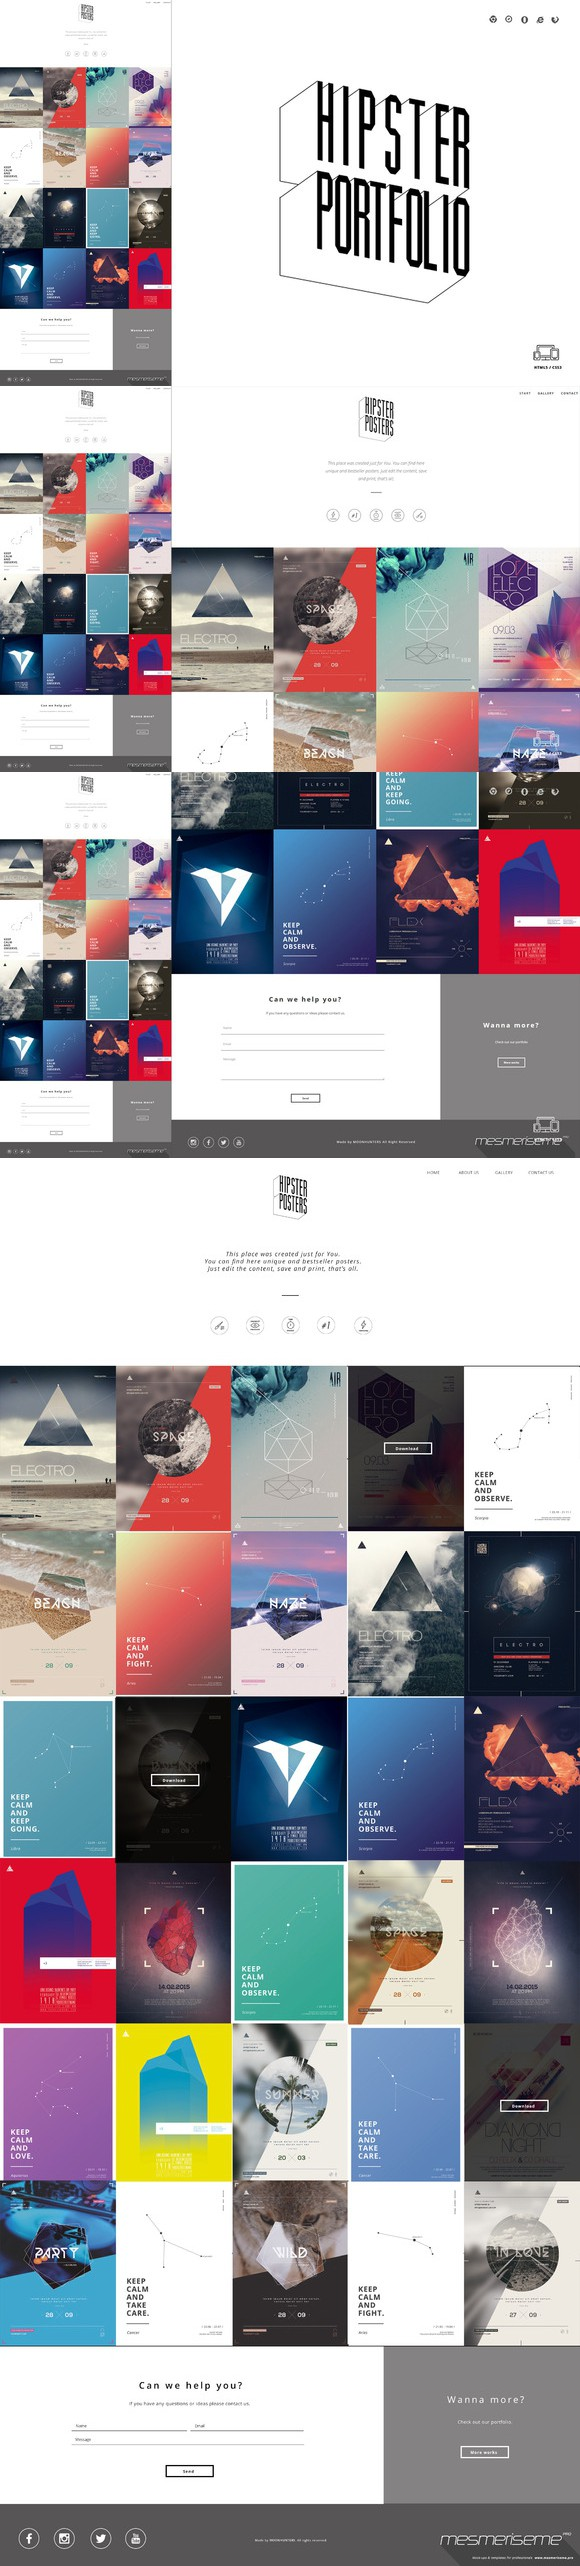 Hipster Portfolio - One Page HTML. Bootstrap Templates. $16.00 ...